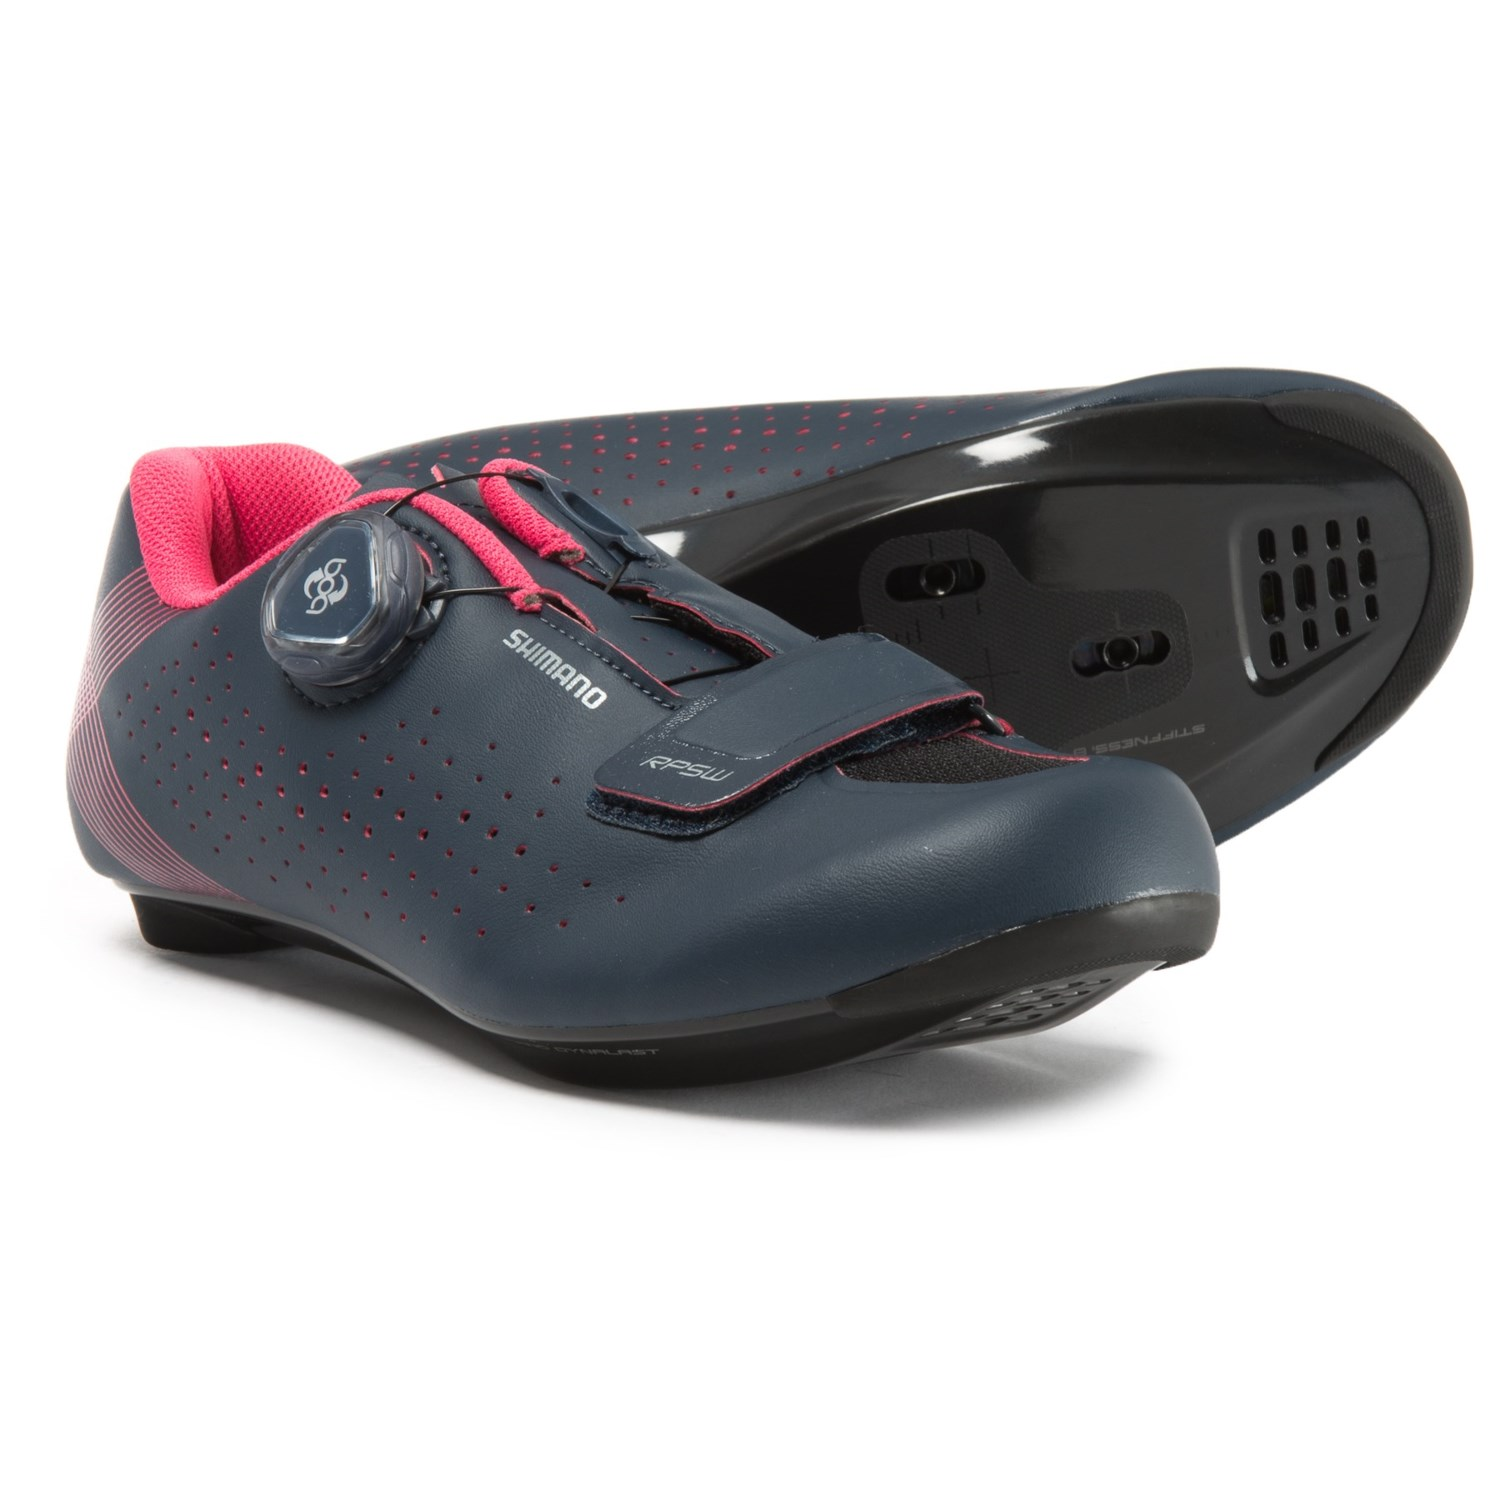 606be4ac6 Shimano SH-RP5W Road Cycling Shoes - 3-Hole (For Women) in